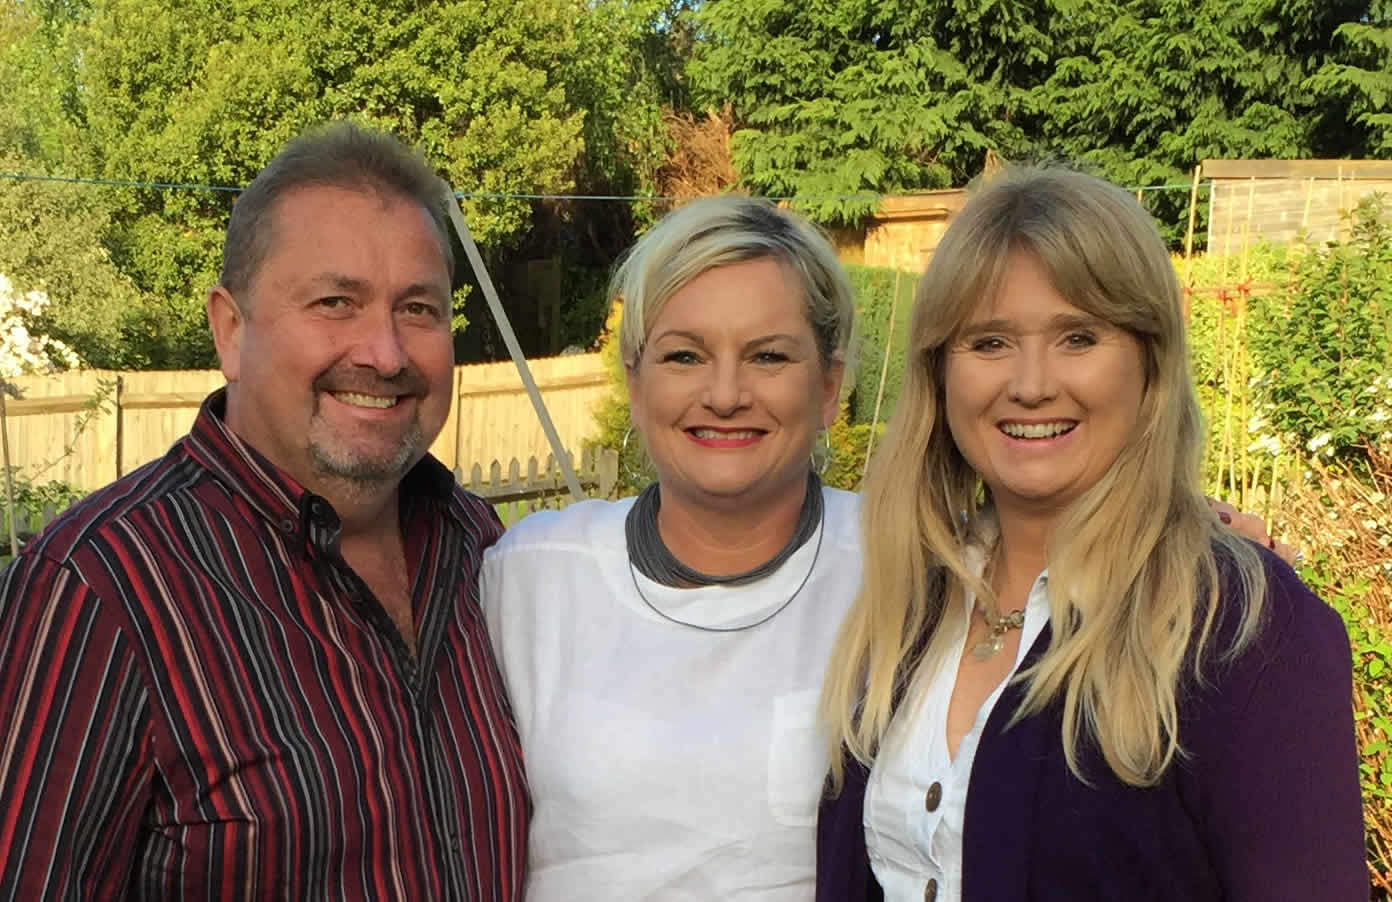 Calli's Corner Welcomes First Franchisee Partnership